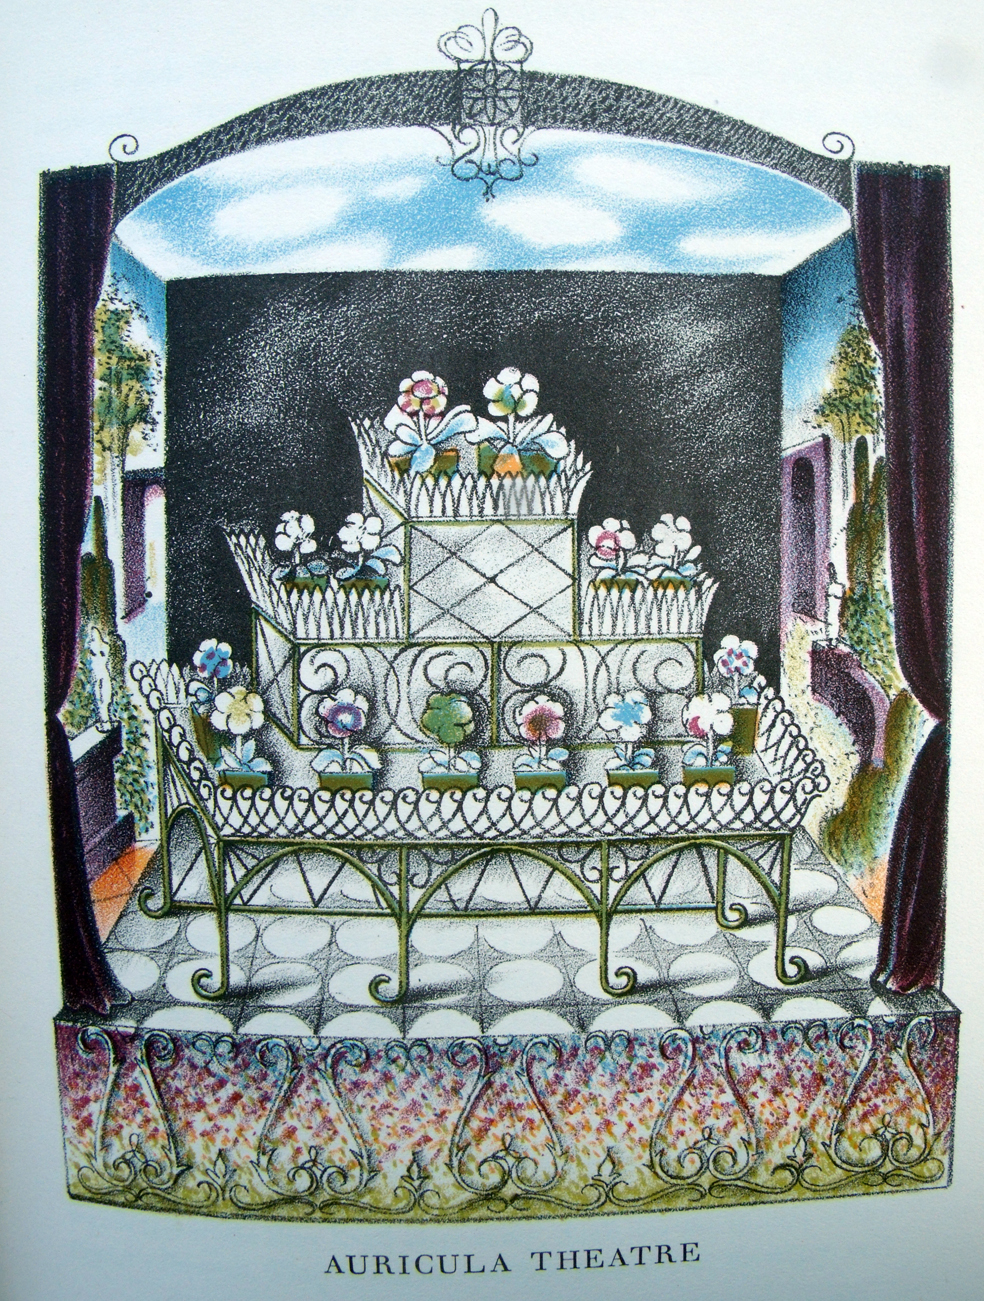 Auricula Theatre illustration by John Farleigh